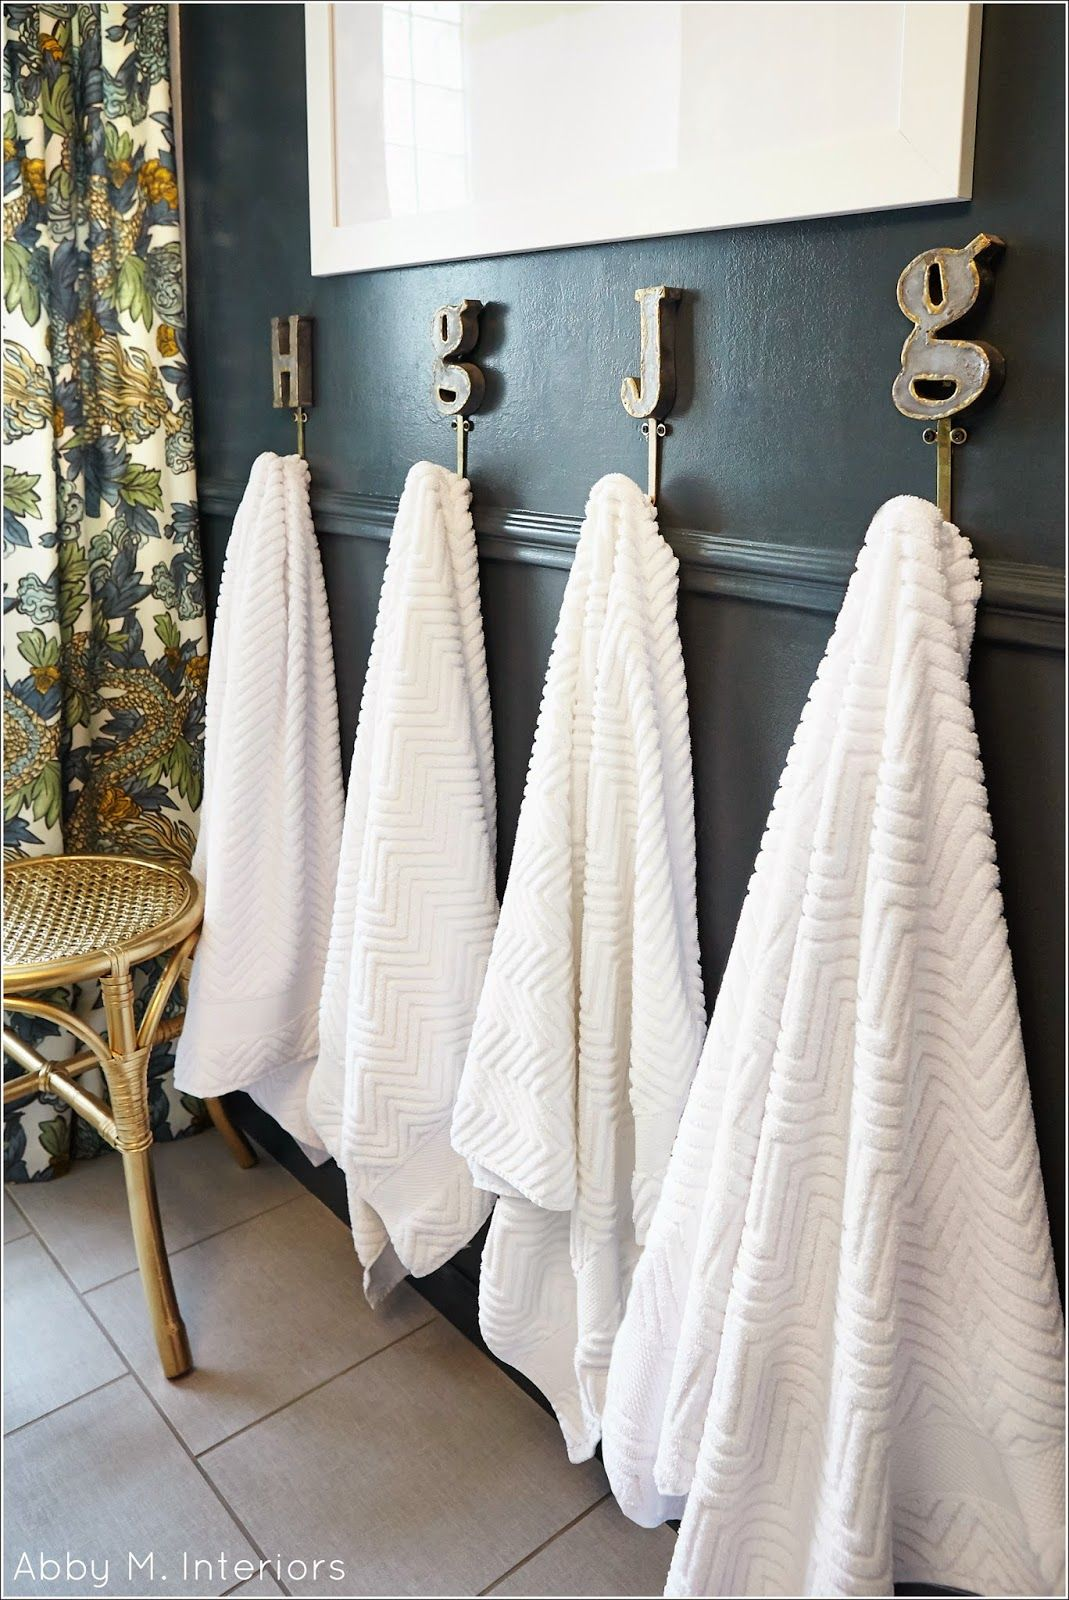 Initial hooks for busy kid bathrooms. Abby M. Interiors: